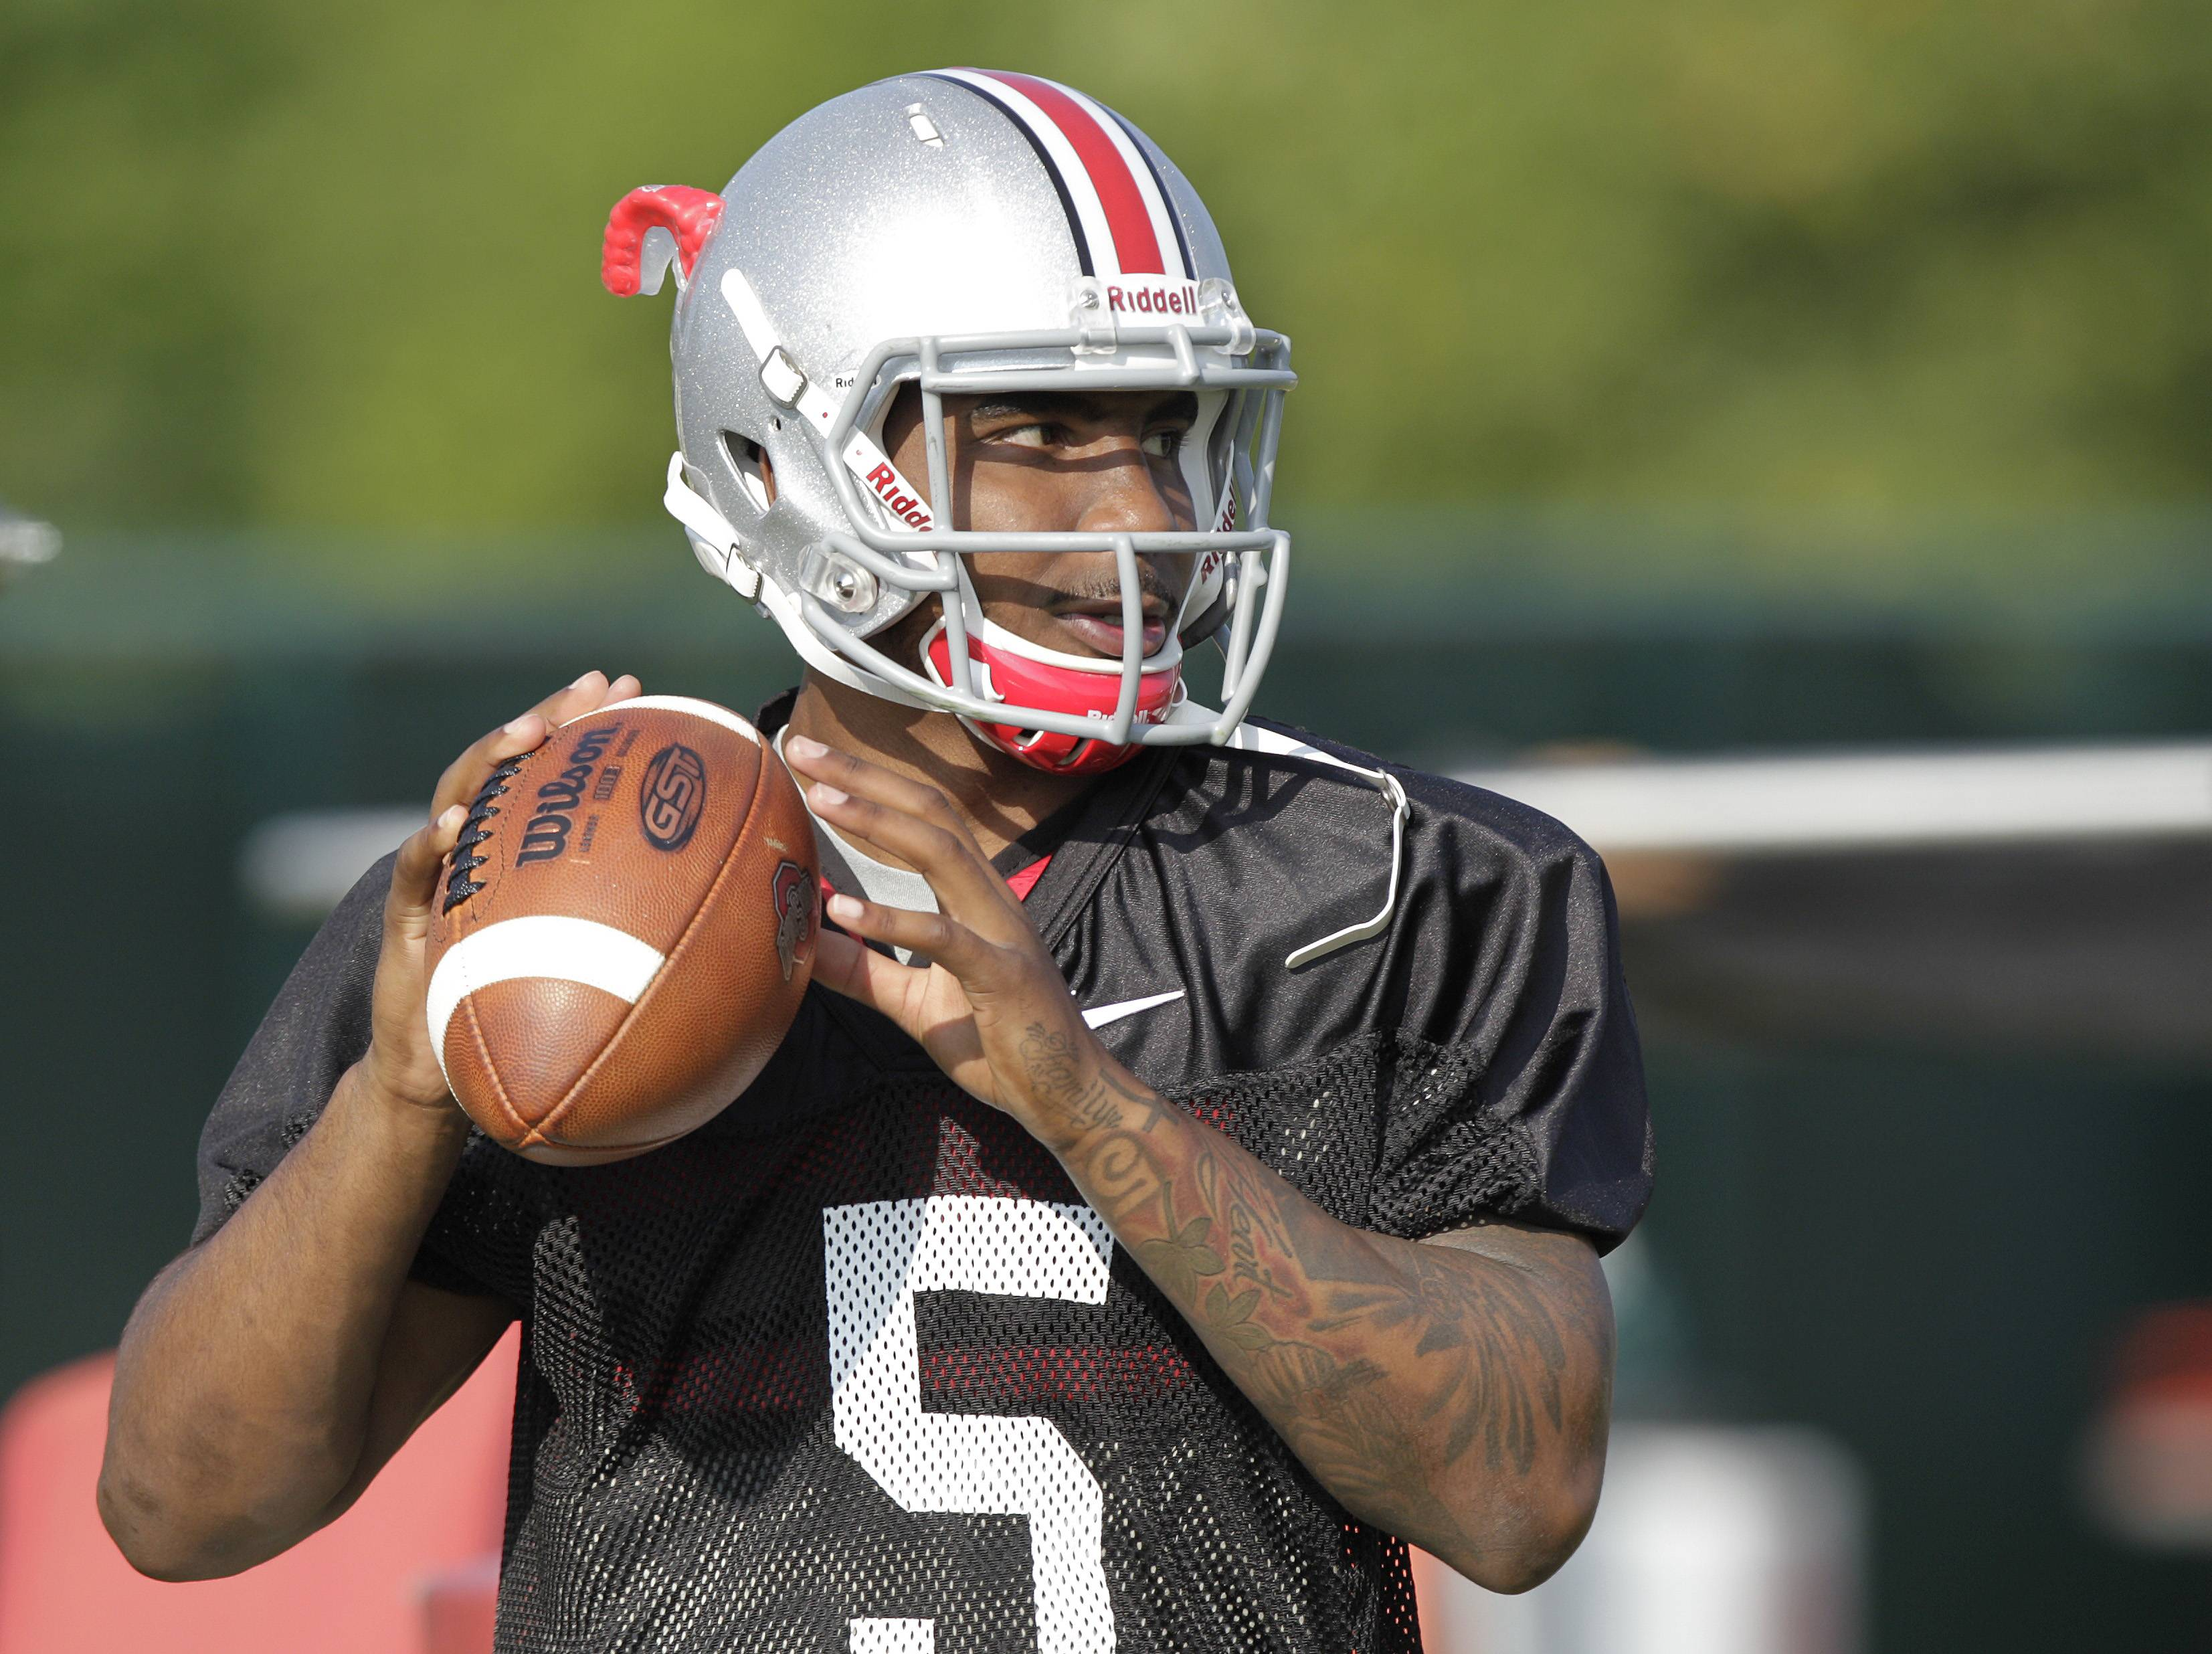 Ohio State quarterback Braxton Miller warms up during practice Aug. 9 in Columbus, Ohio.